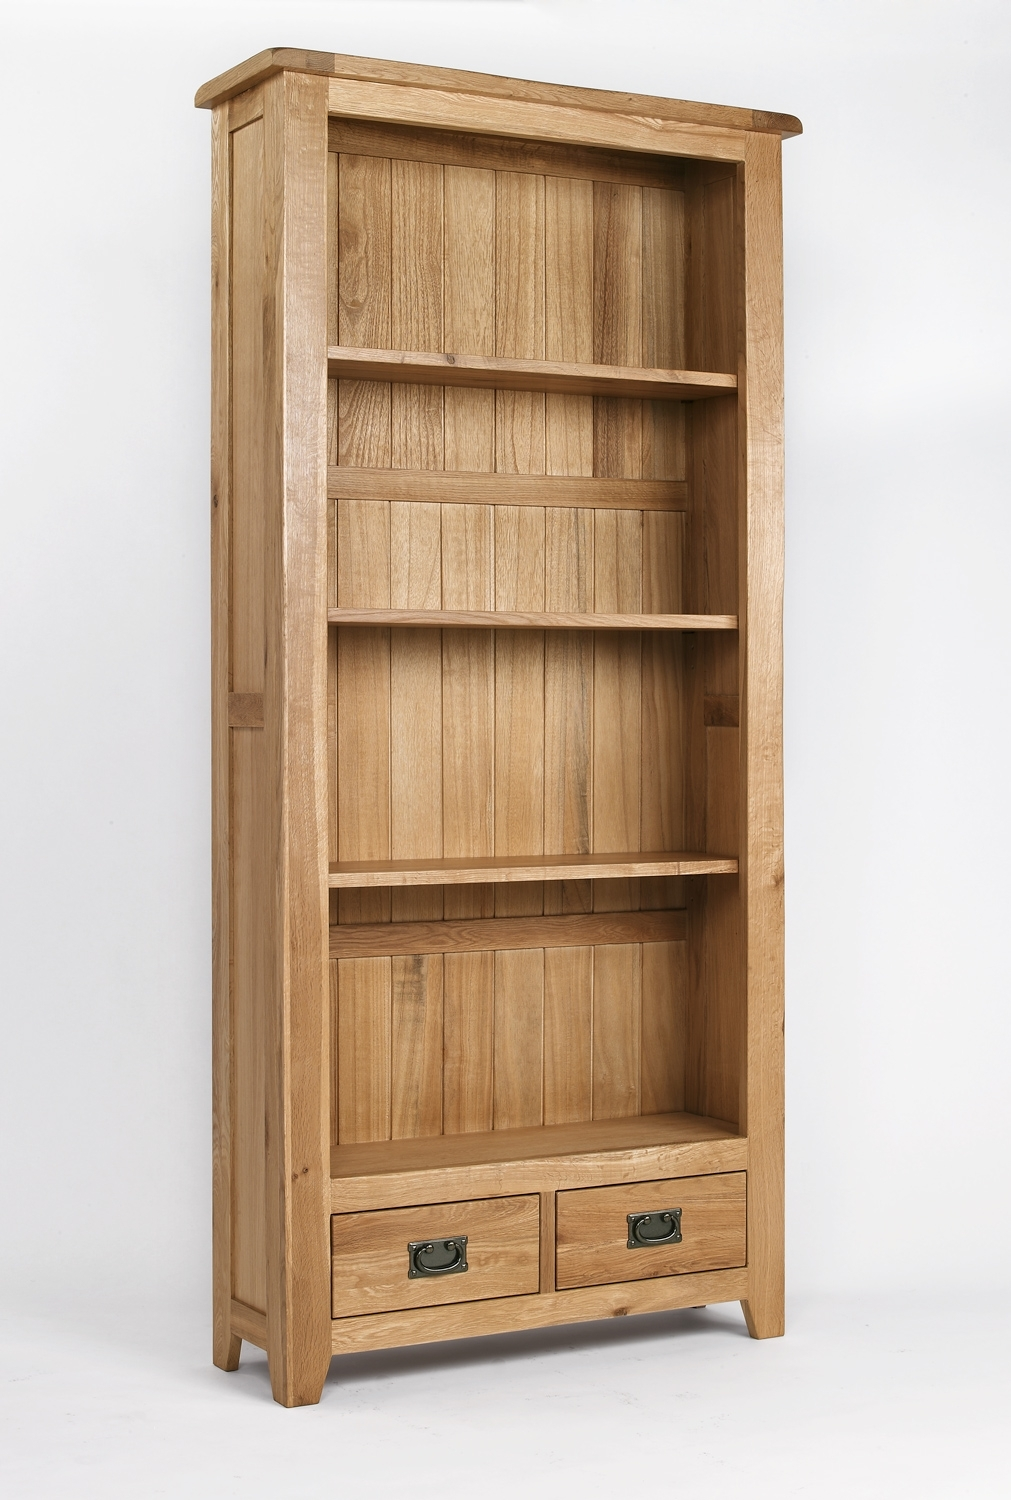 Wooden Bookshelves Idi Design With Wooden Bookcases (View 3 of 15)